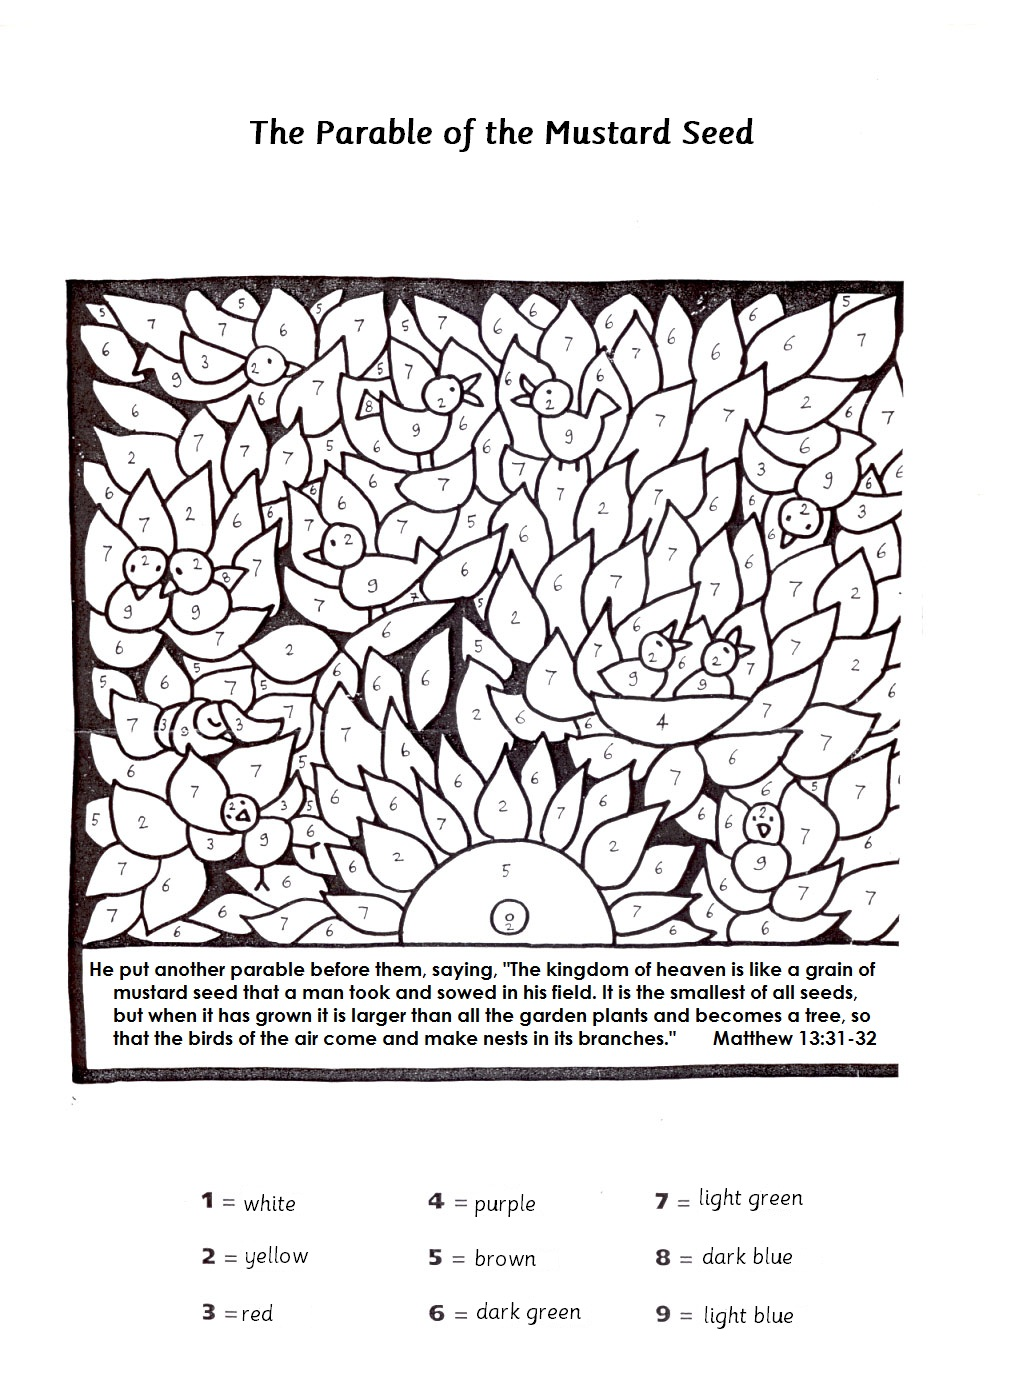 mustard seed parable coloring page - cut and paste december 2012